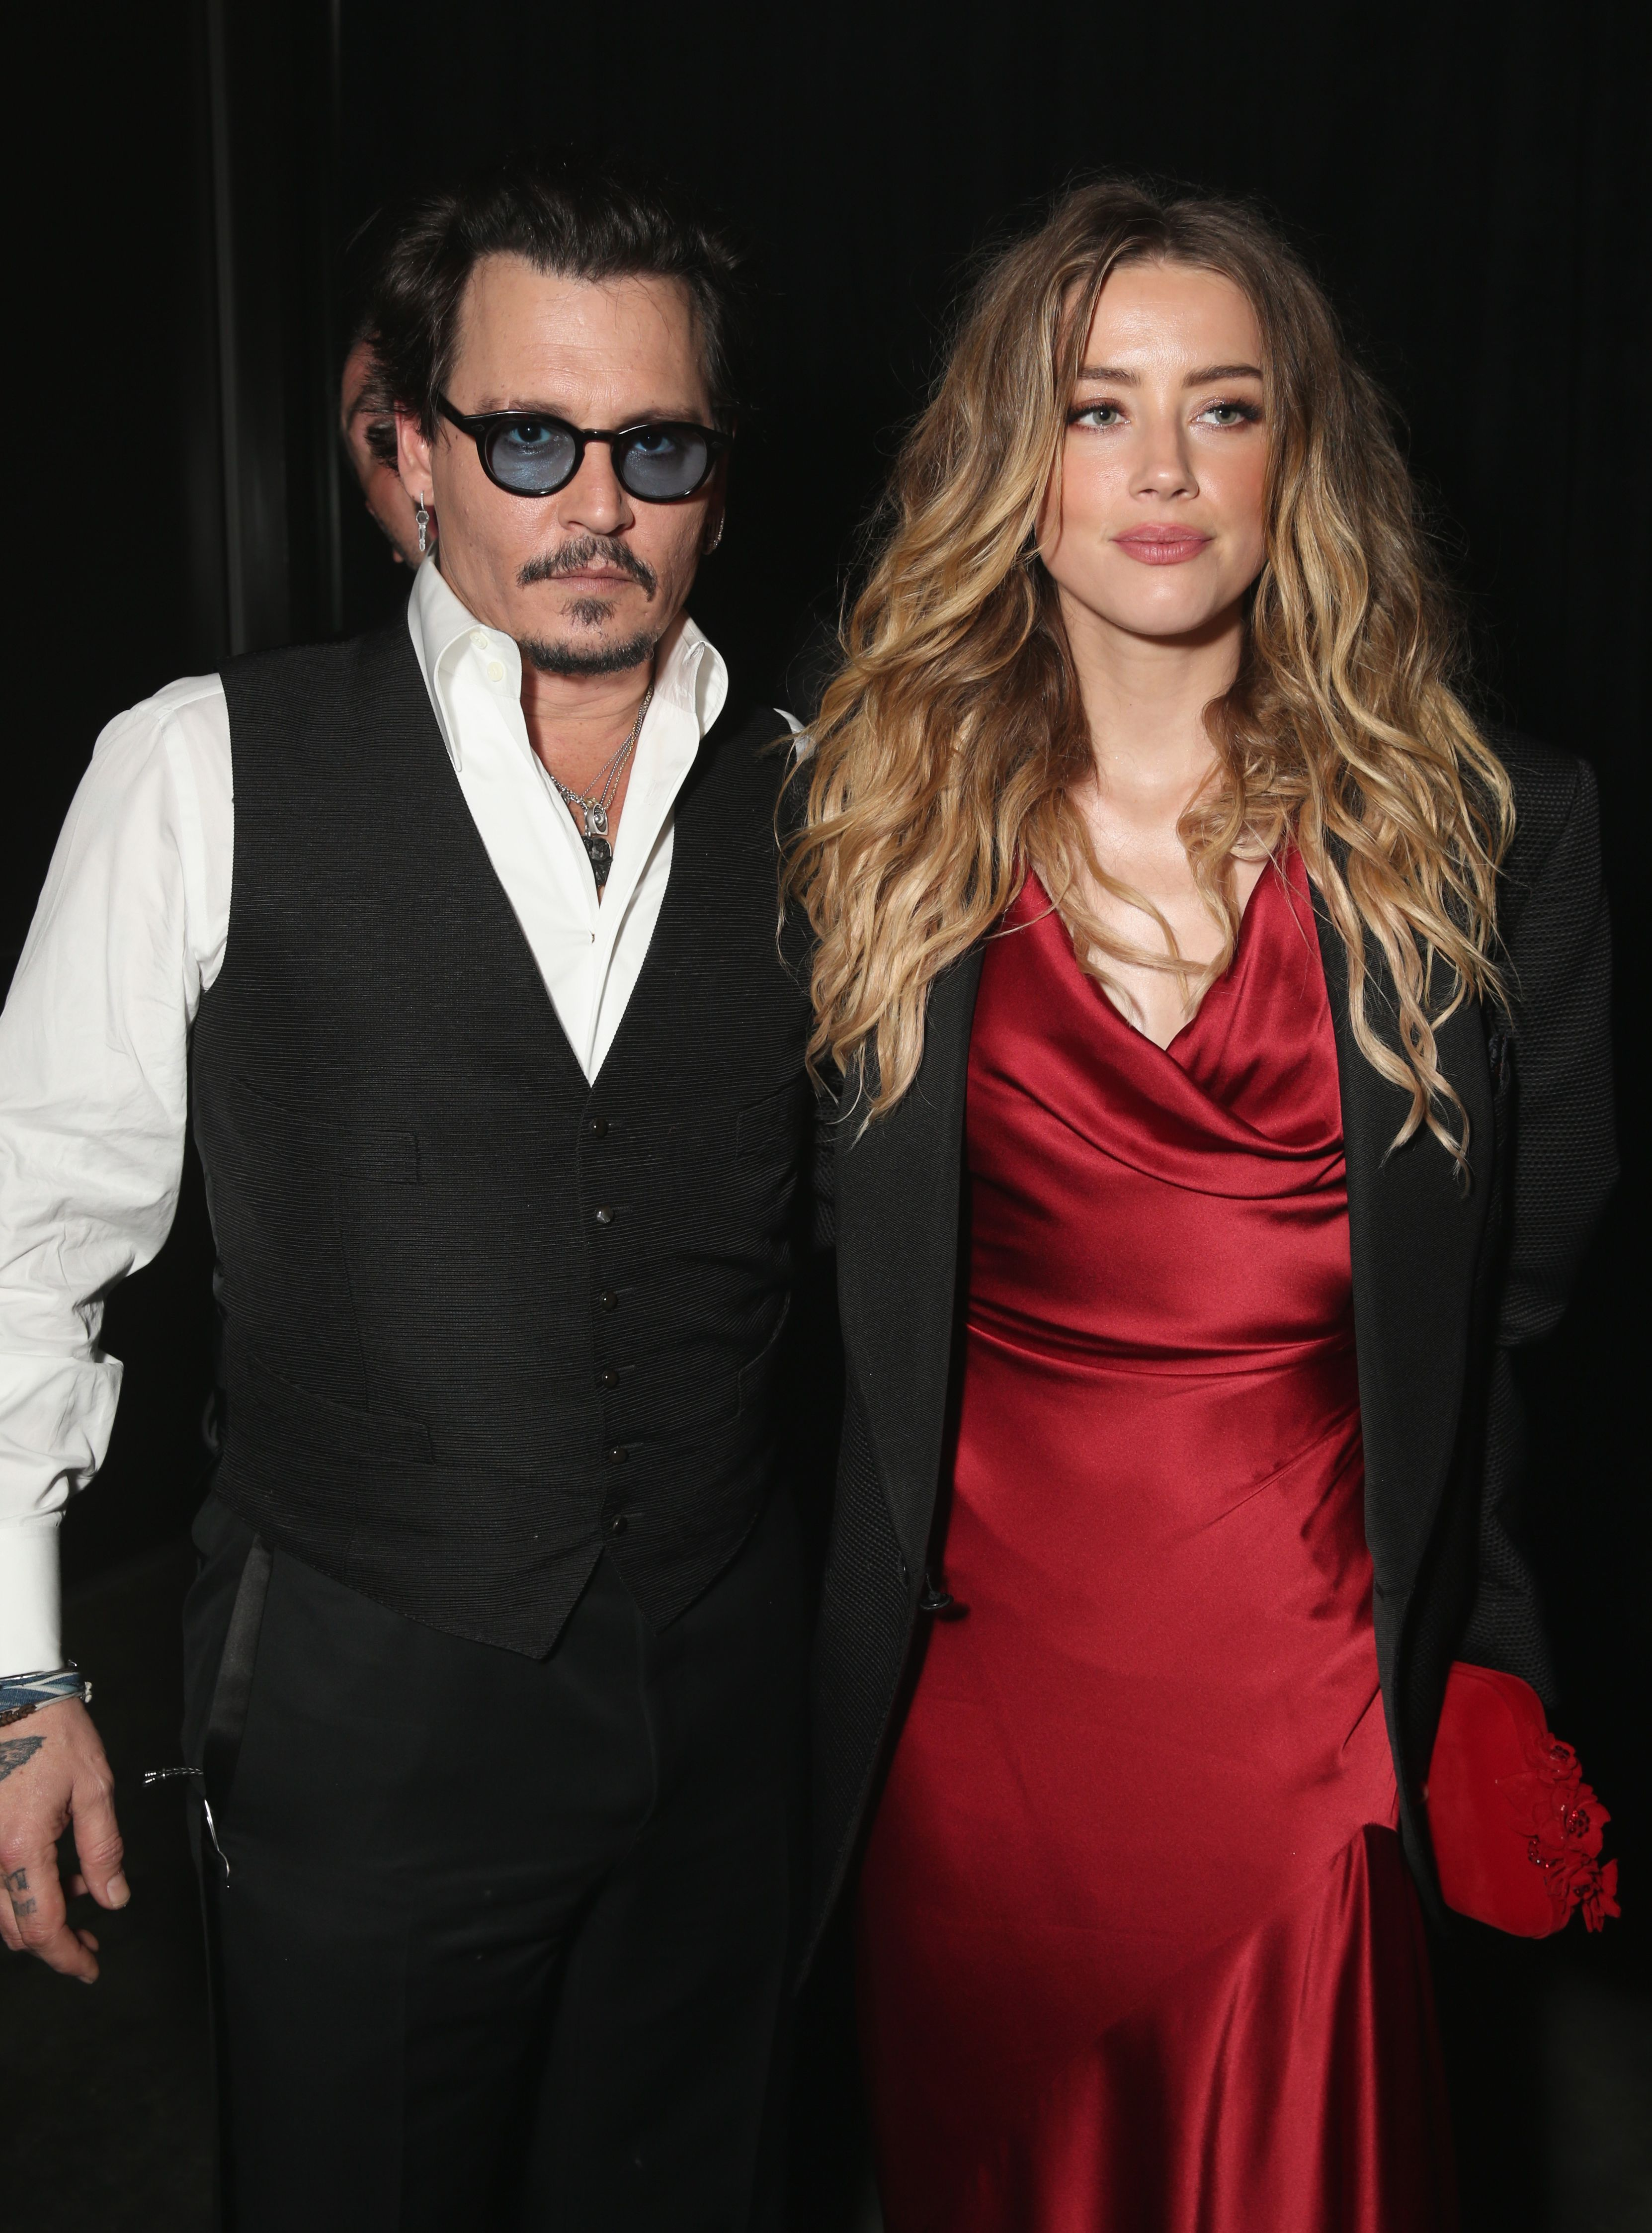 Johnny Depp Reportedly Tried To Get Amber Heard Fired From Aquaman Amber Heard Johnny Depp Johnny Depp And Amber Amber Heard Movies